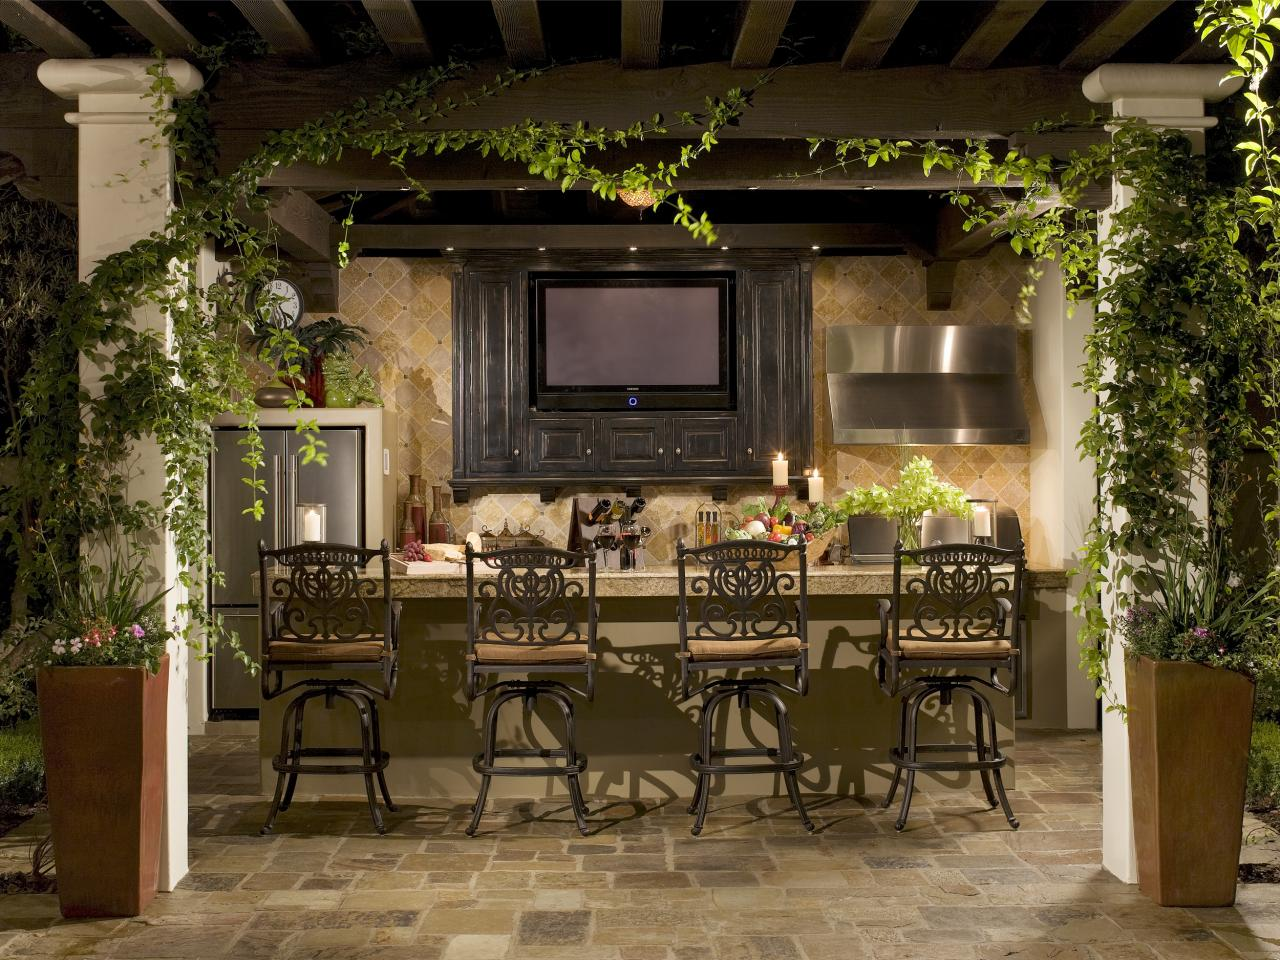 Lovely Design Of The Patio Areas With Brown Wooden Table And Chairs As The Outdoor Bar Ideas